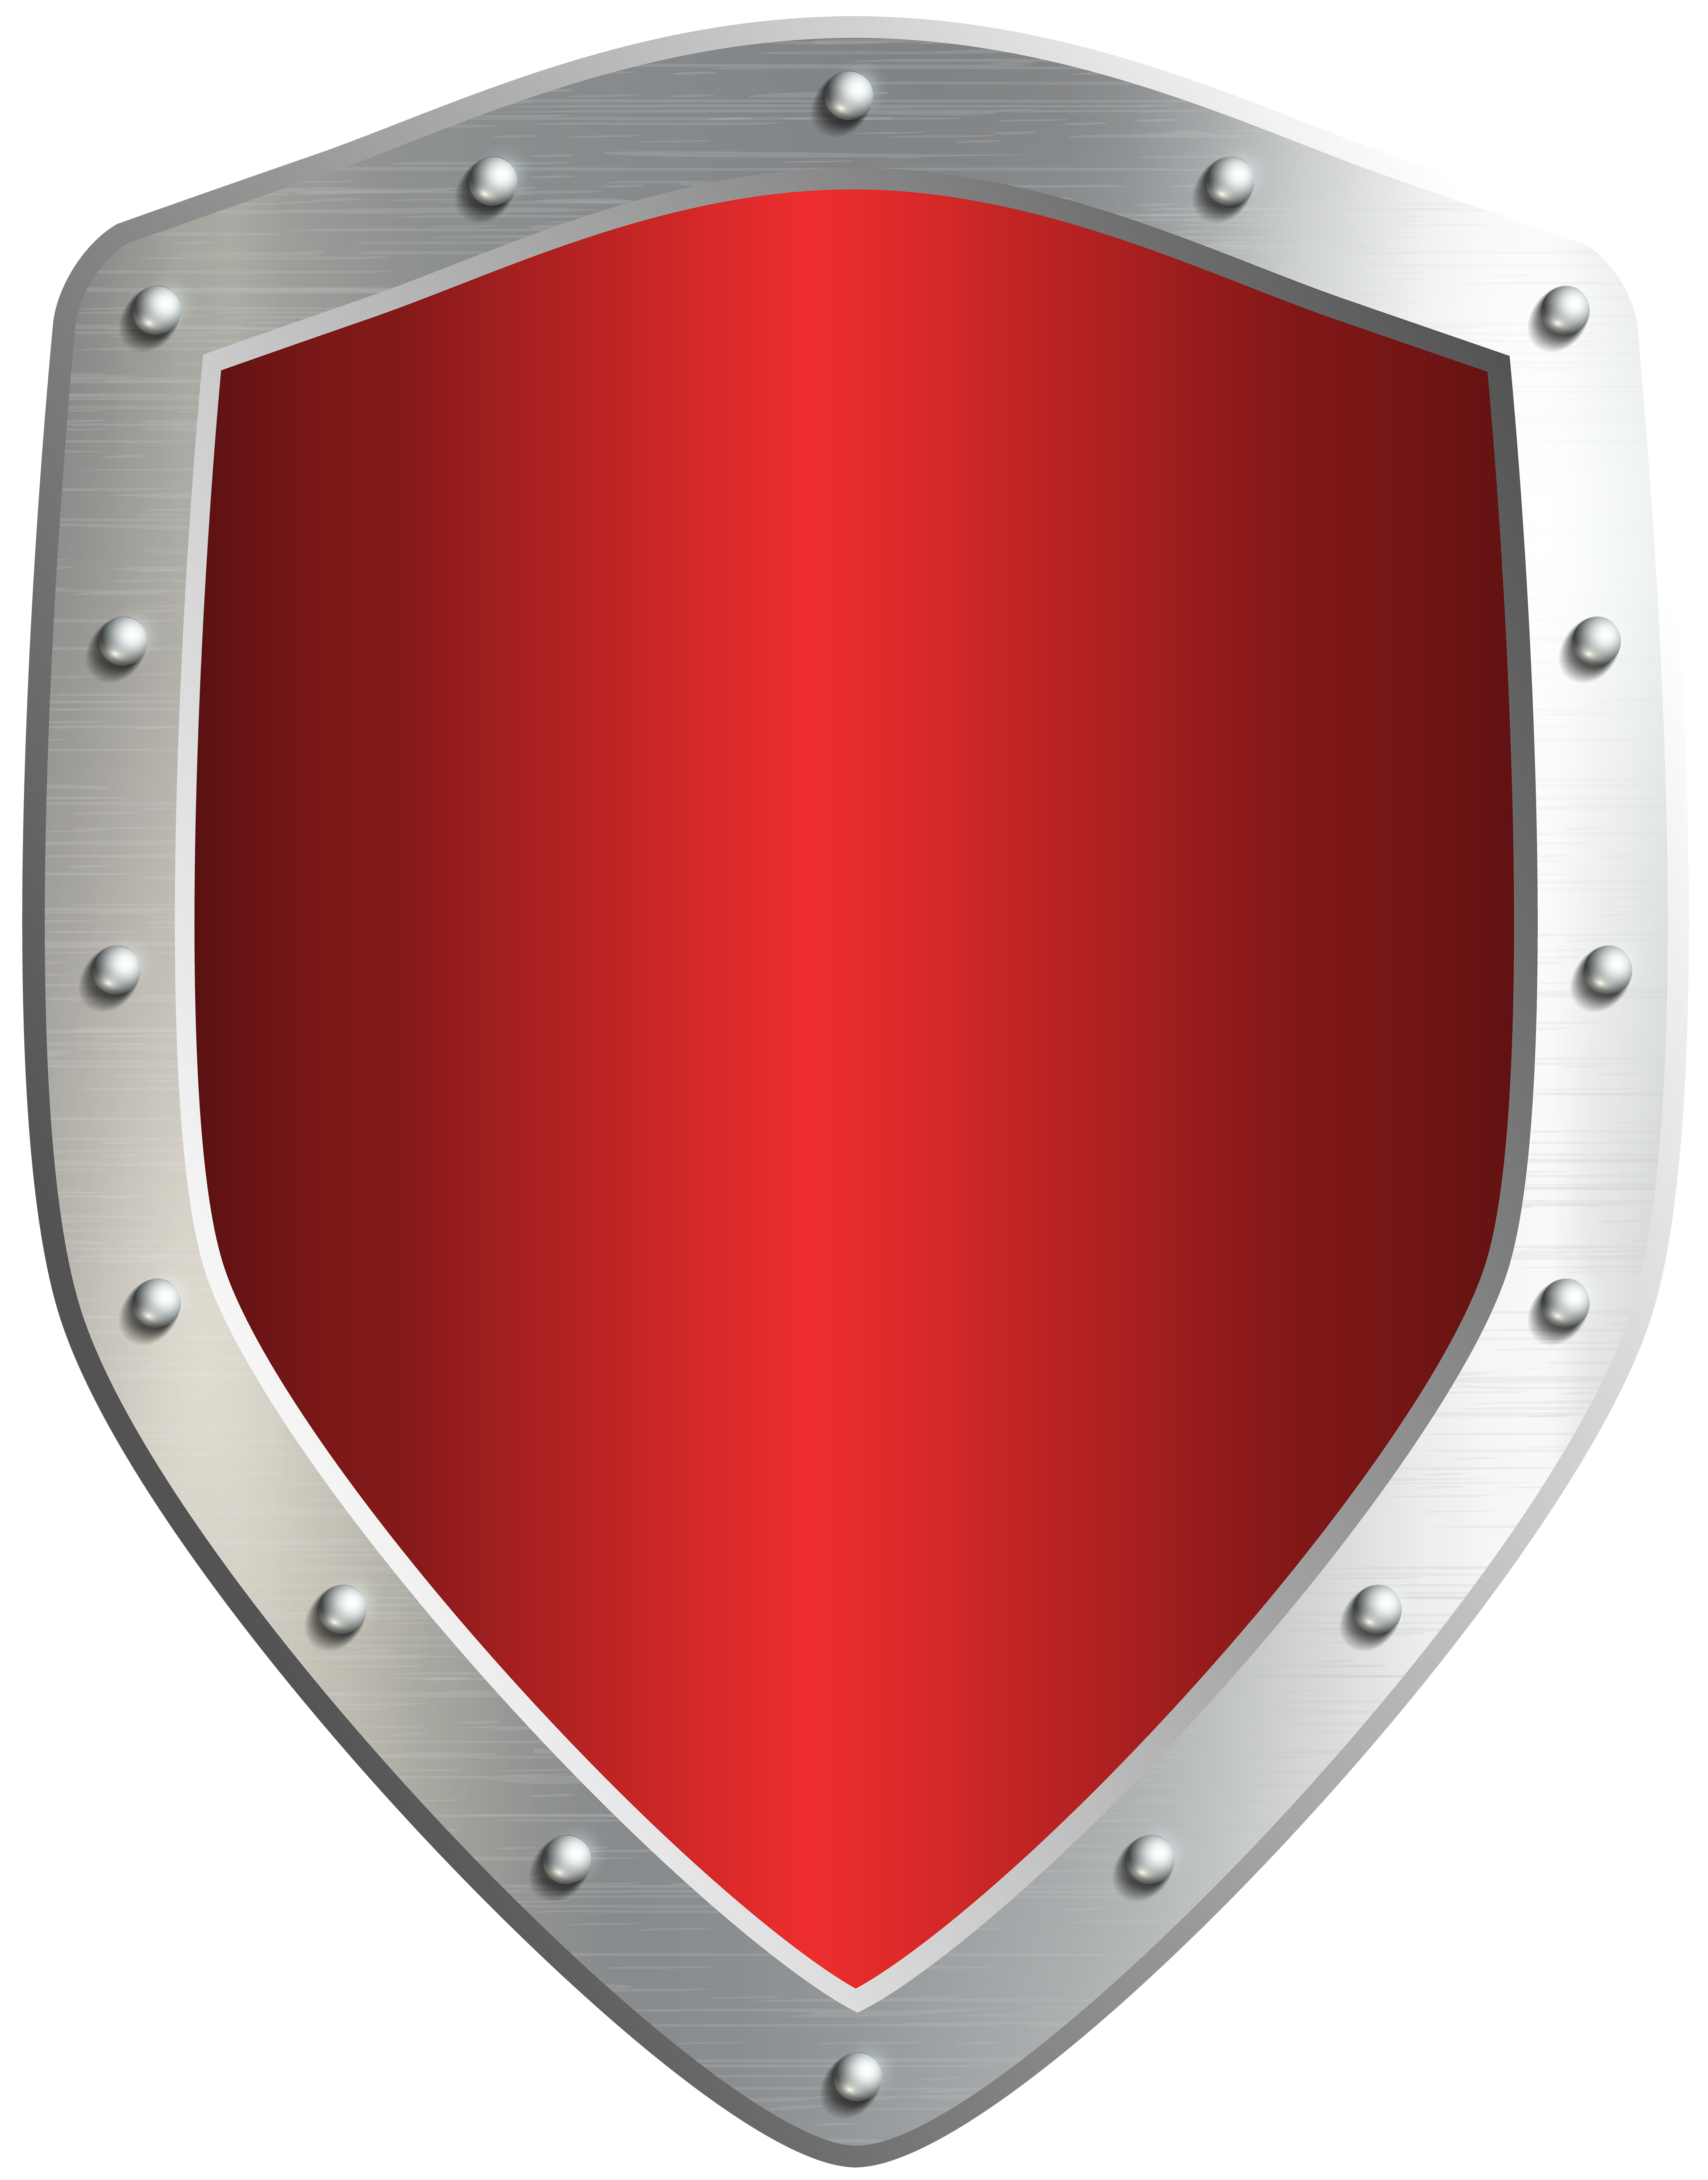 Shield clipart png clip art freeuse library Shield Badge PNG Clip Art | Gallery Yopriceville - High ... clip art freeuse library